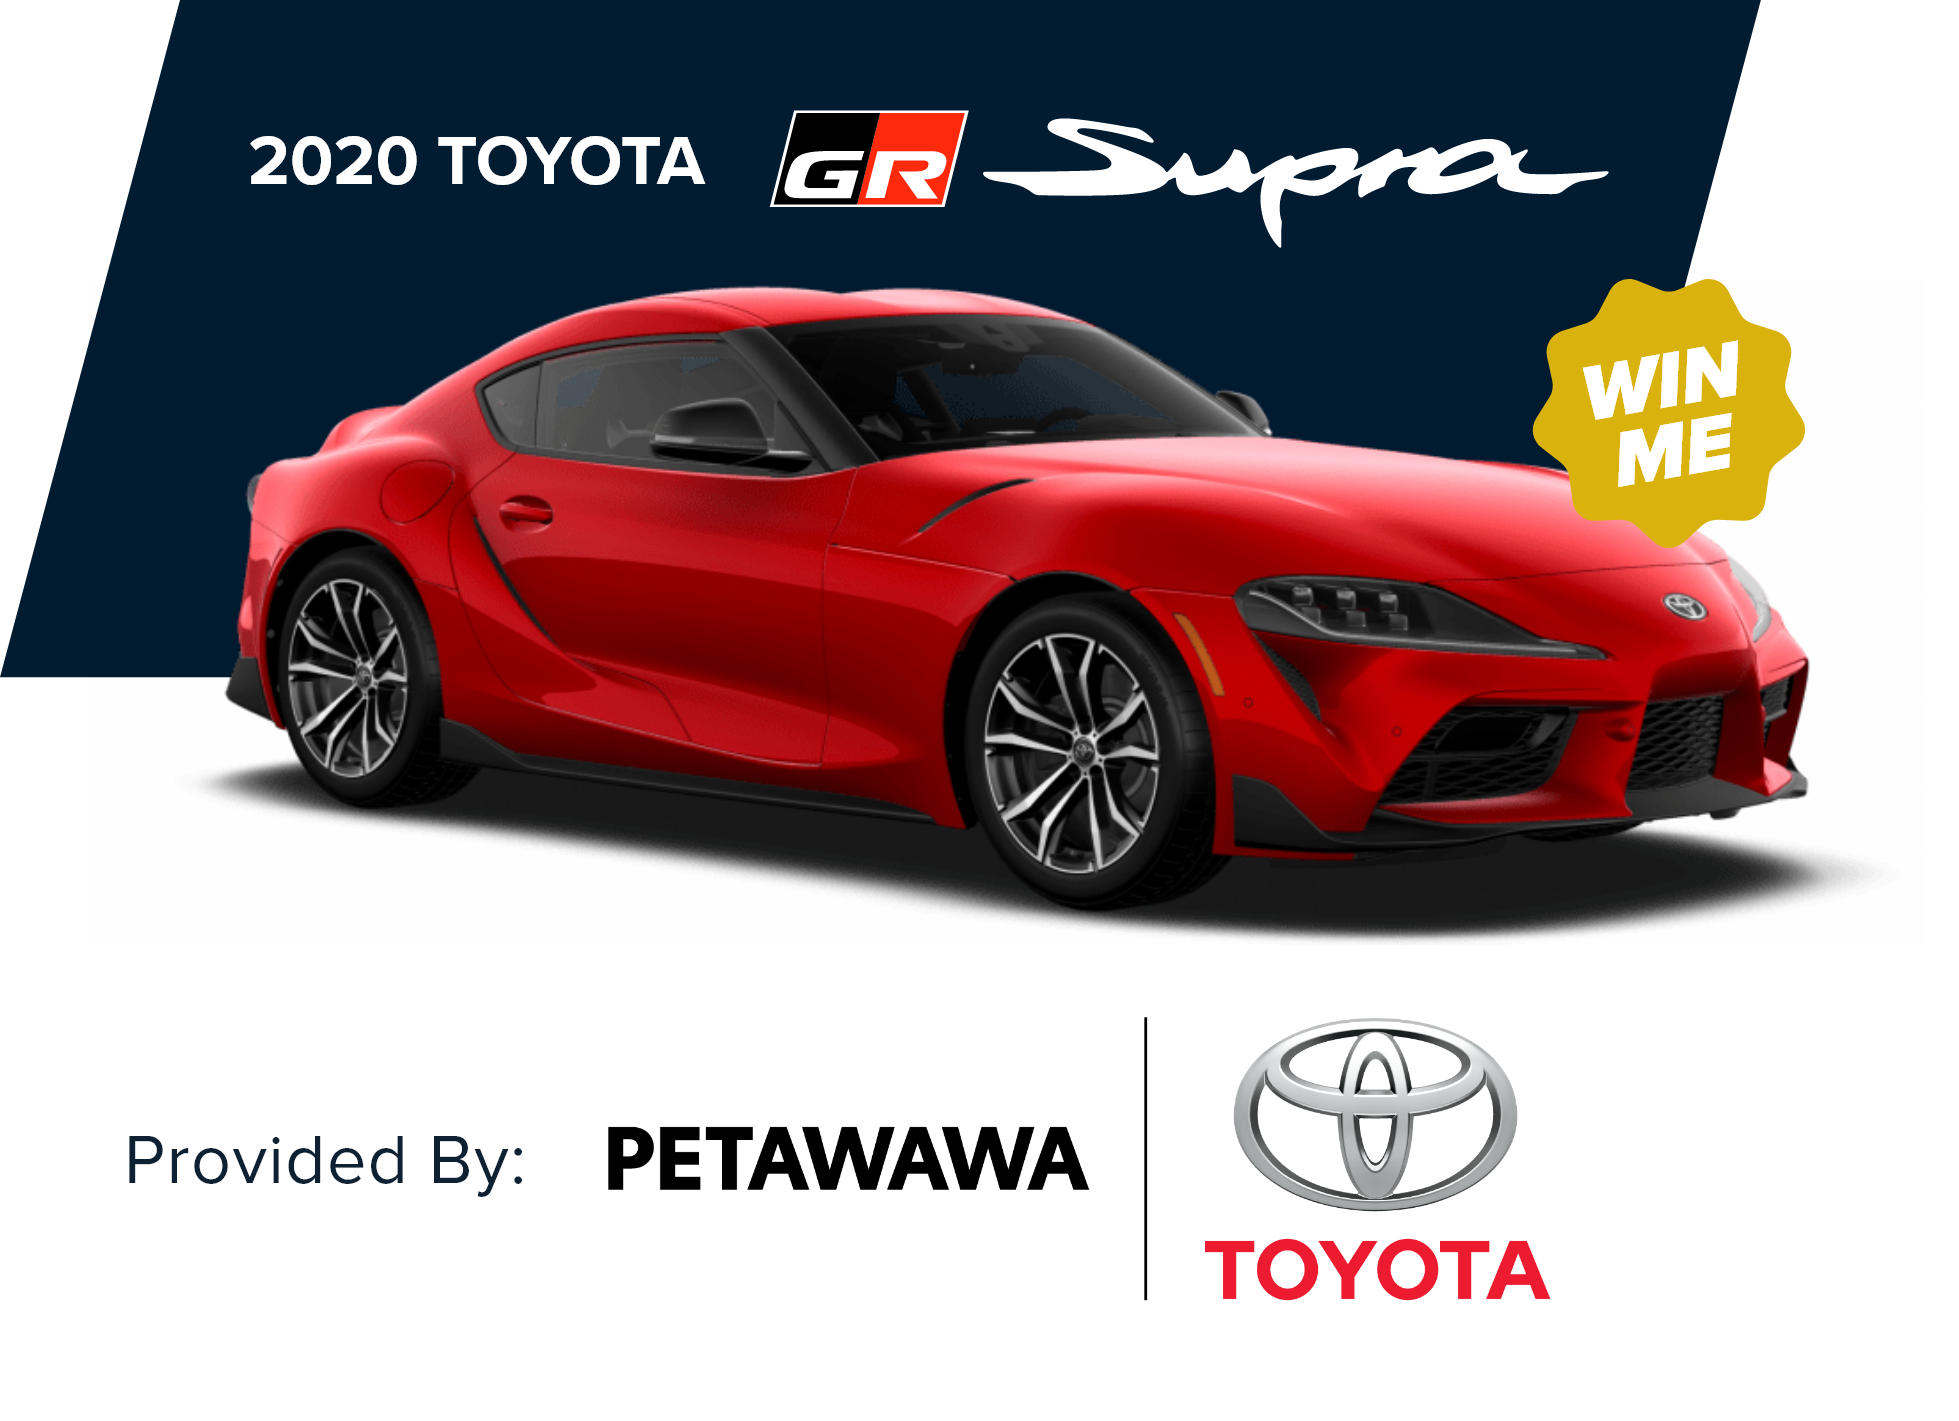 2020 red Toyota Supra